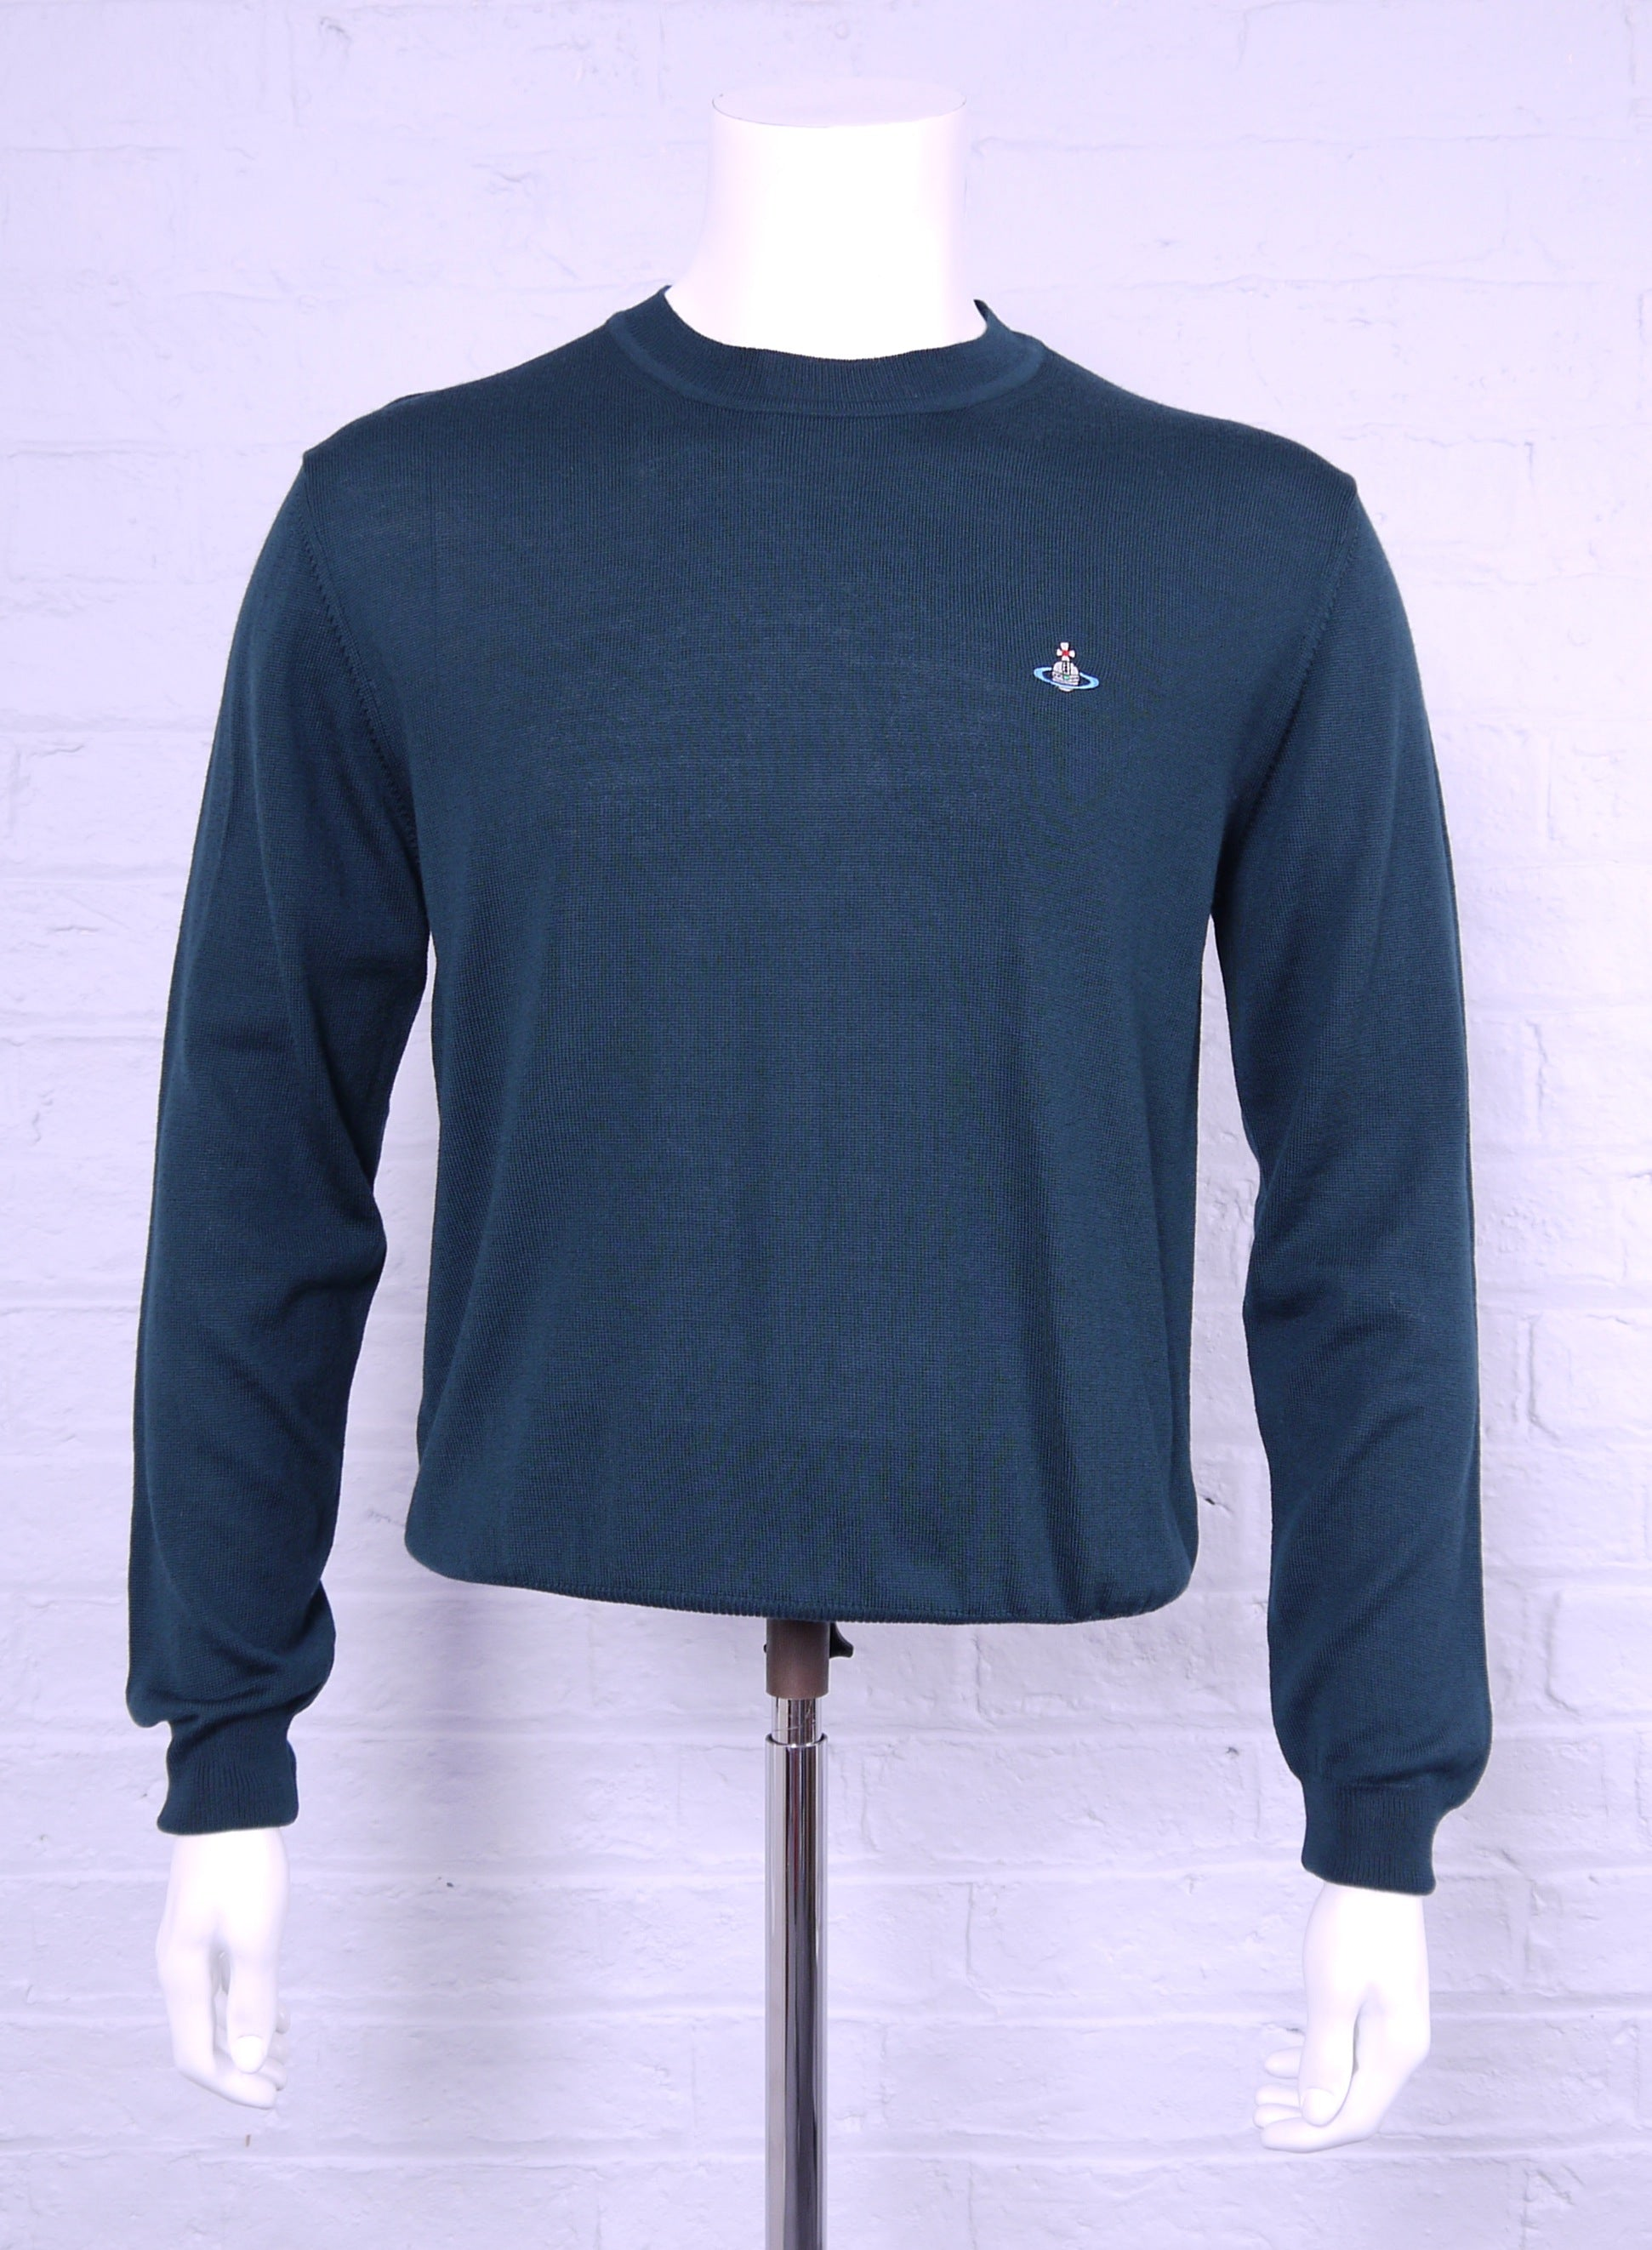 Vivienne Westwood Classic Crew Neck Knit Bottle Green Marl